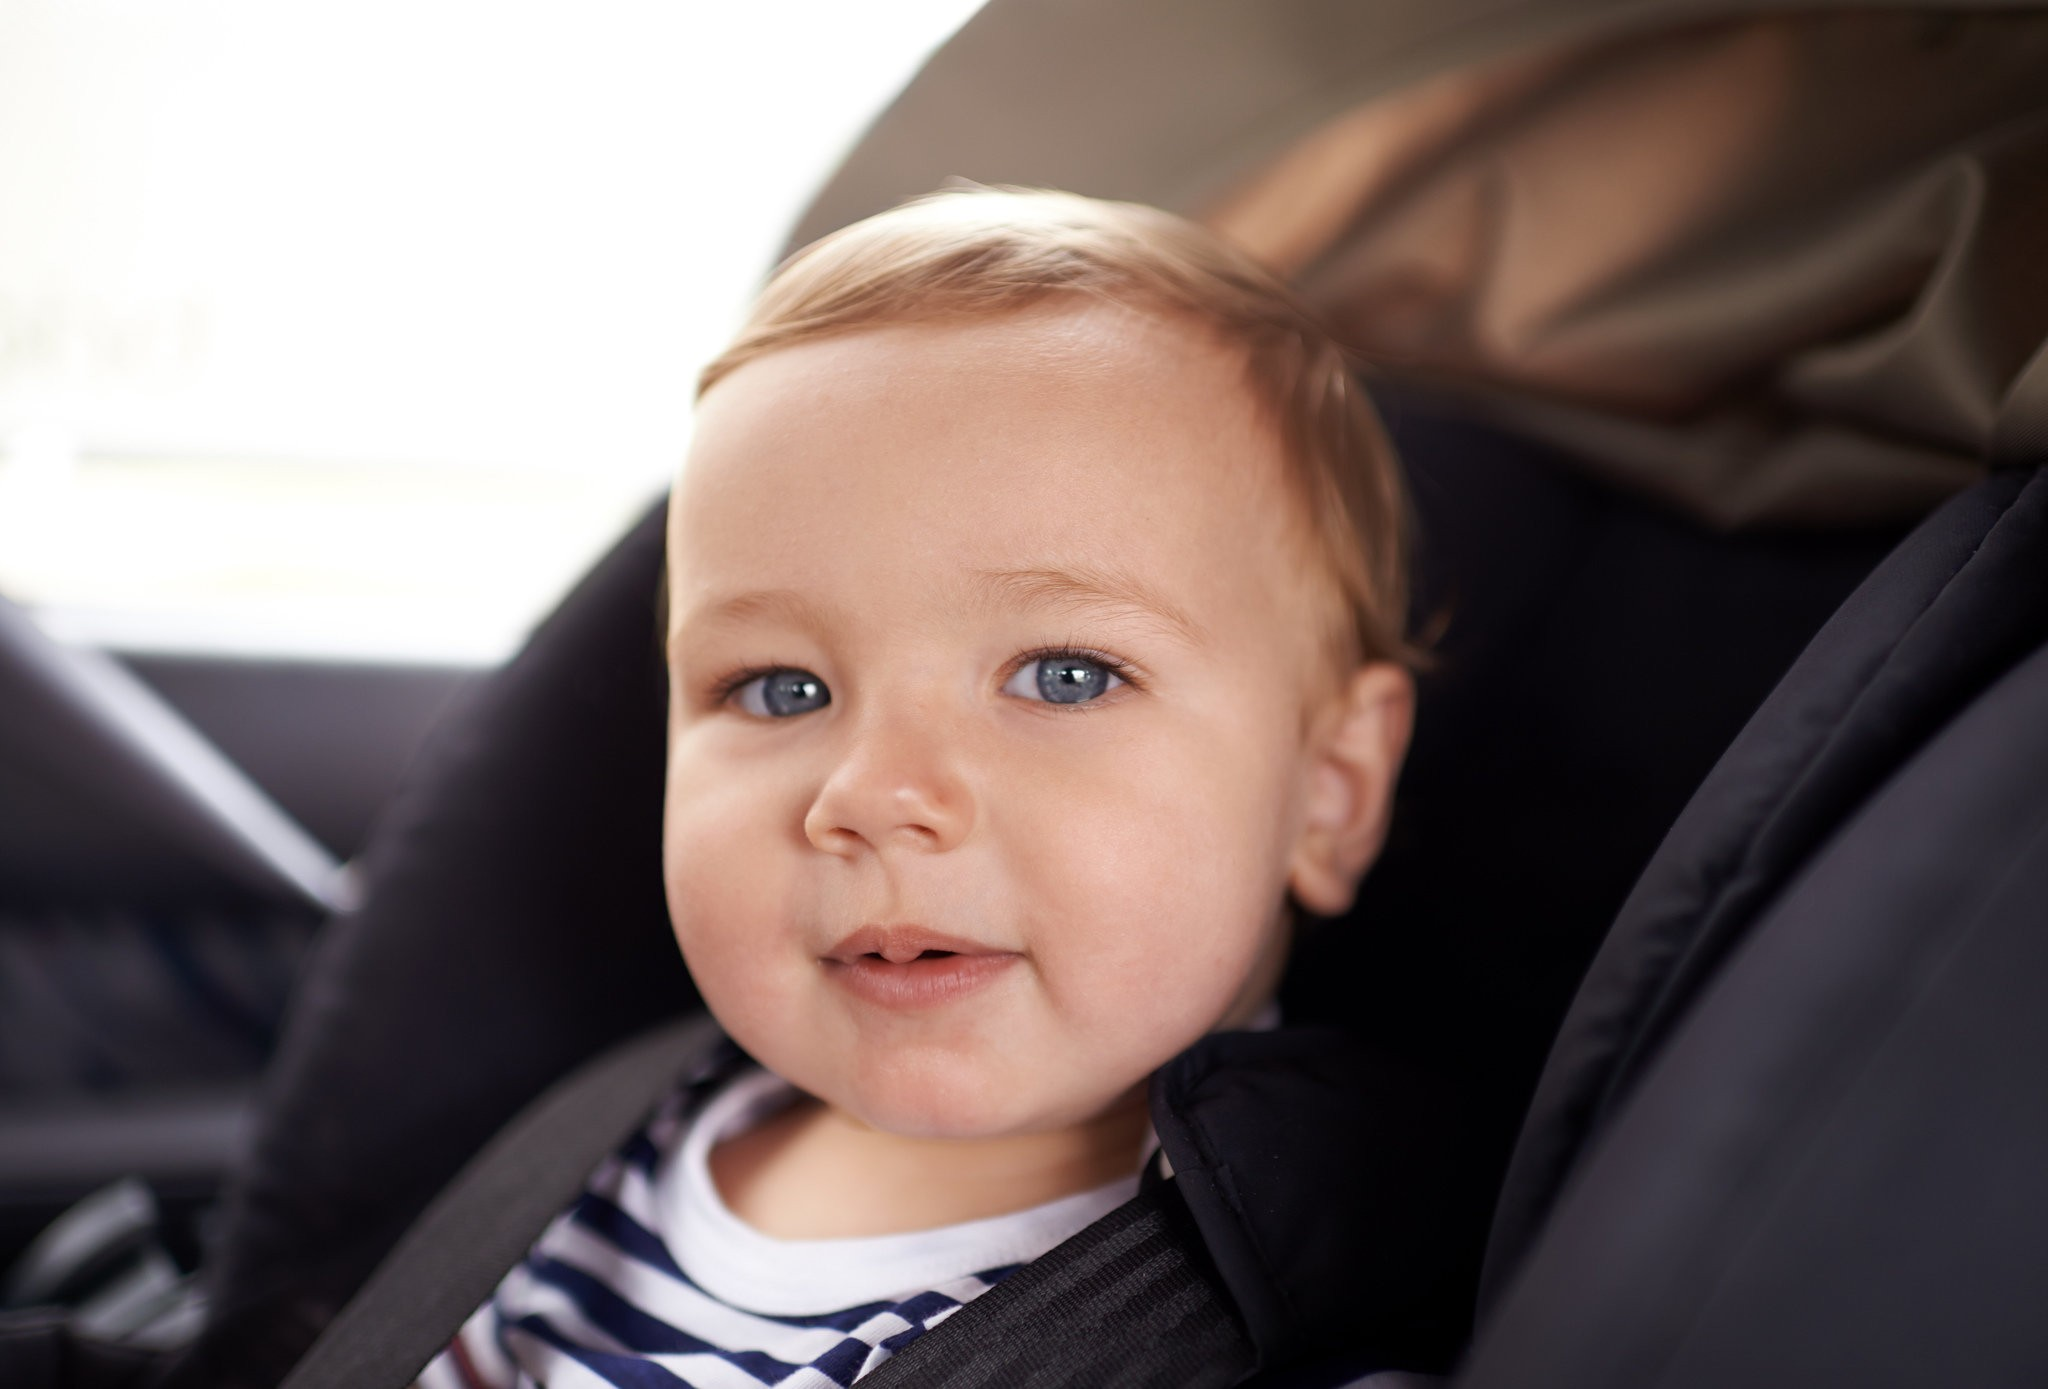 Rear Facing Car Seat Law Nj What Parents Need To Know About N J S Car Seat Law Nj